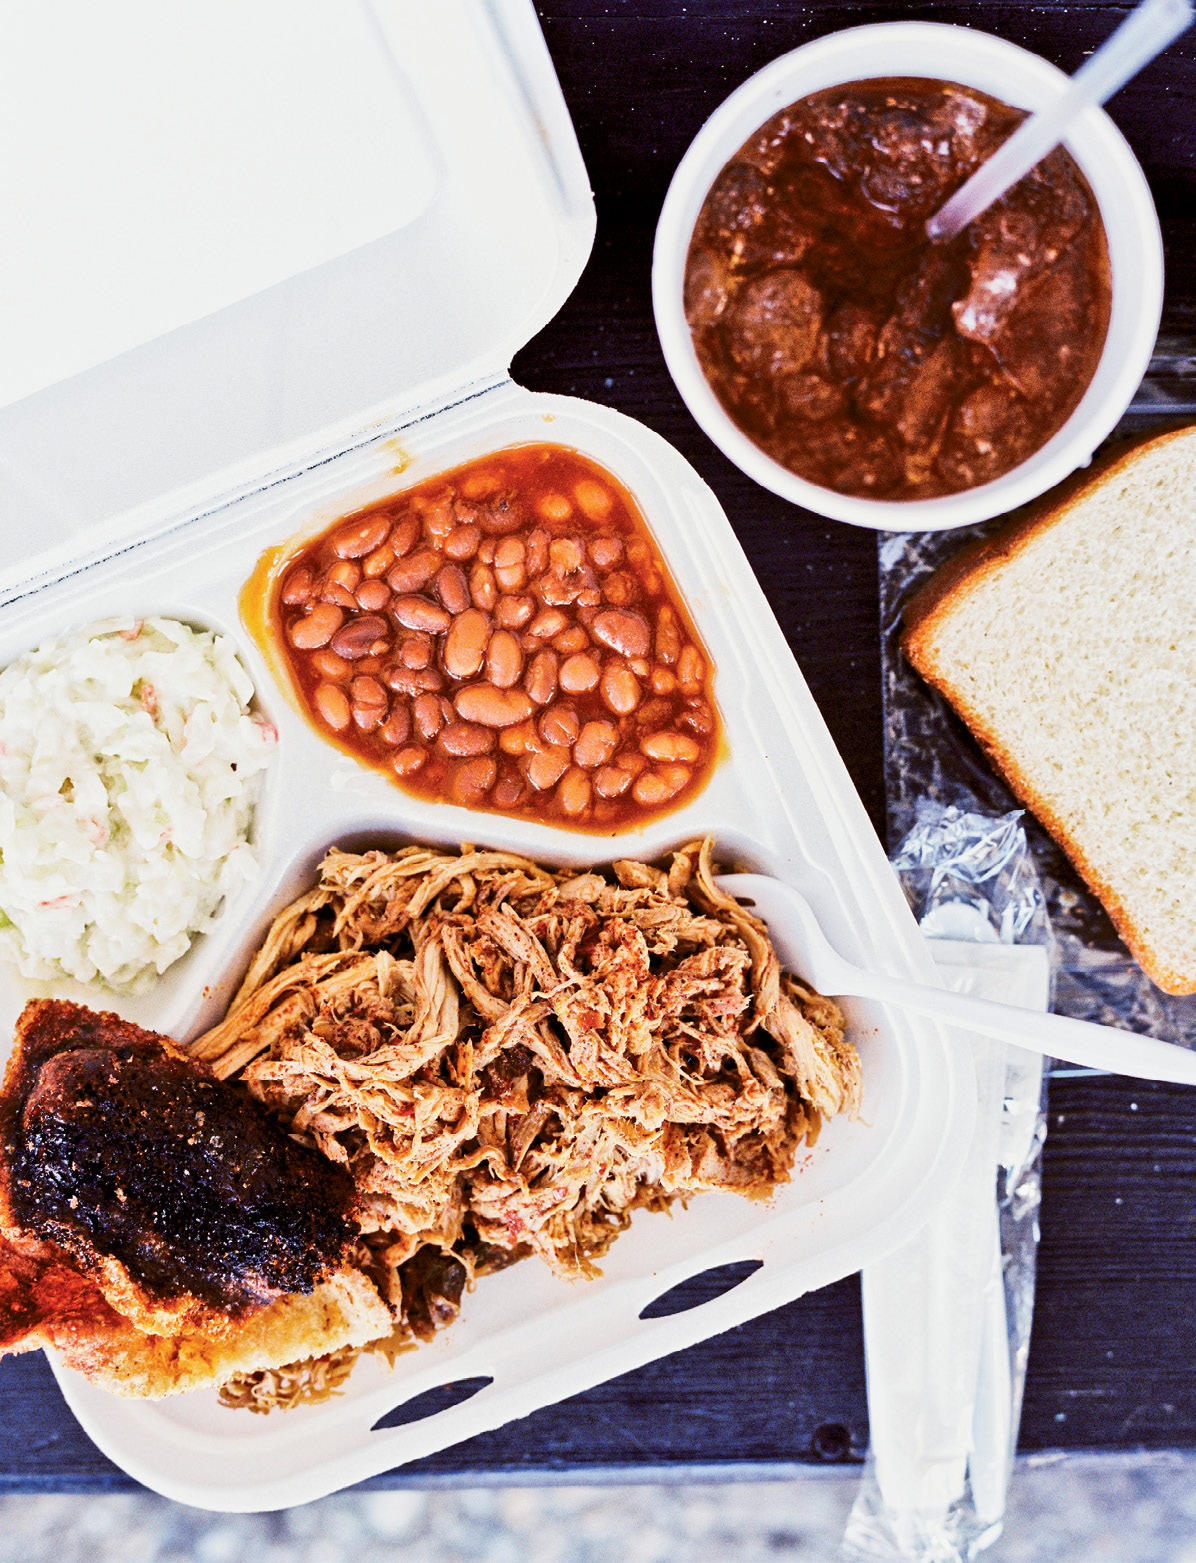 Pulled pork, chicken, and sides from Scott's Bar-B-Que, Rodney Scott's family's place in Hemingway